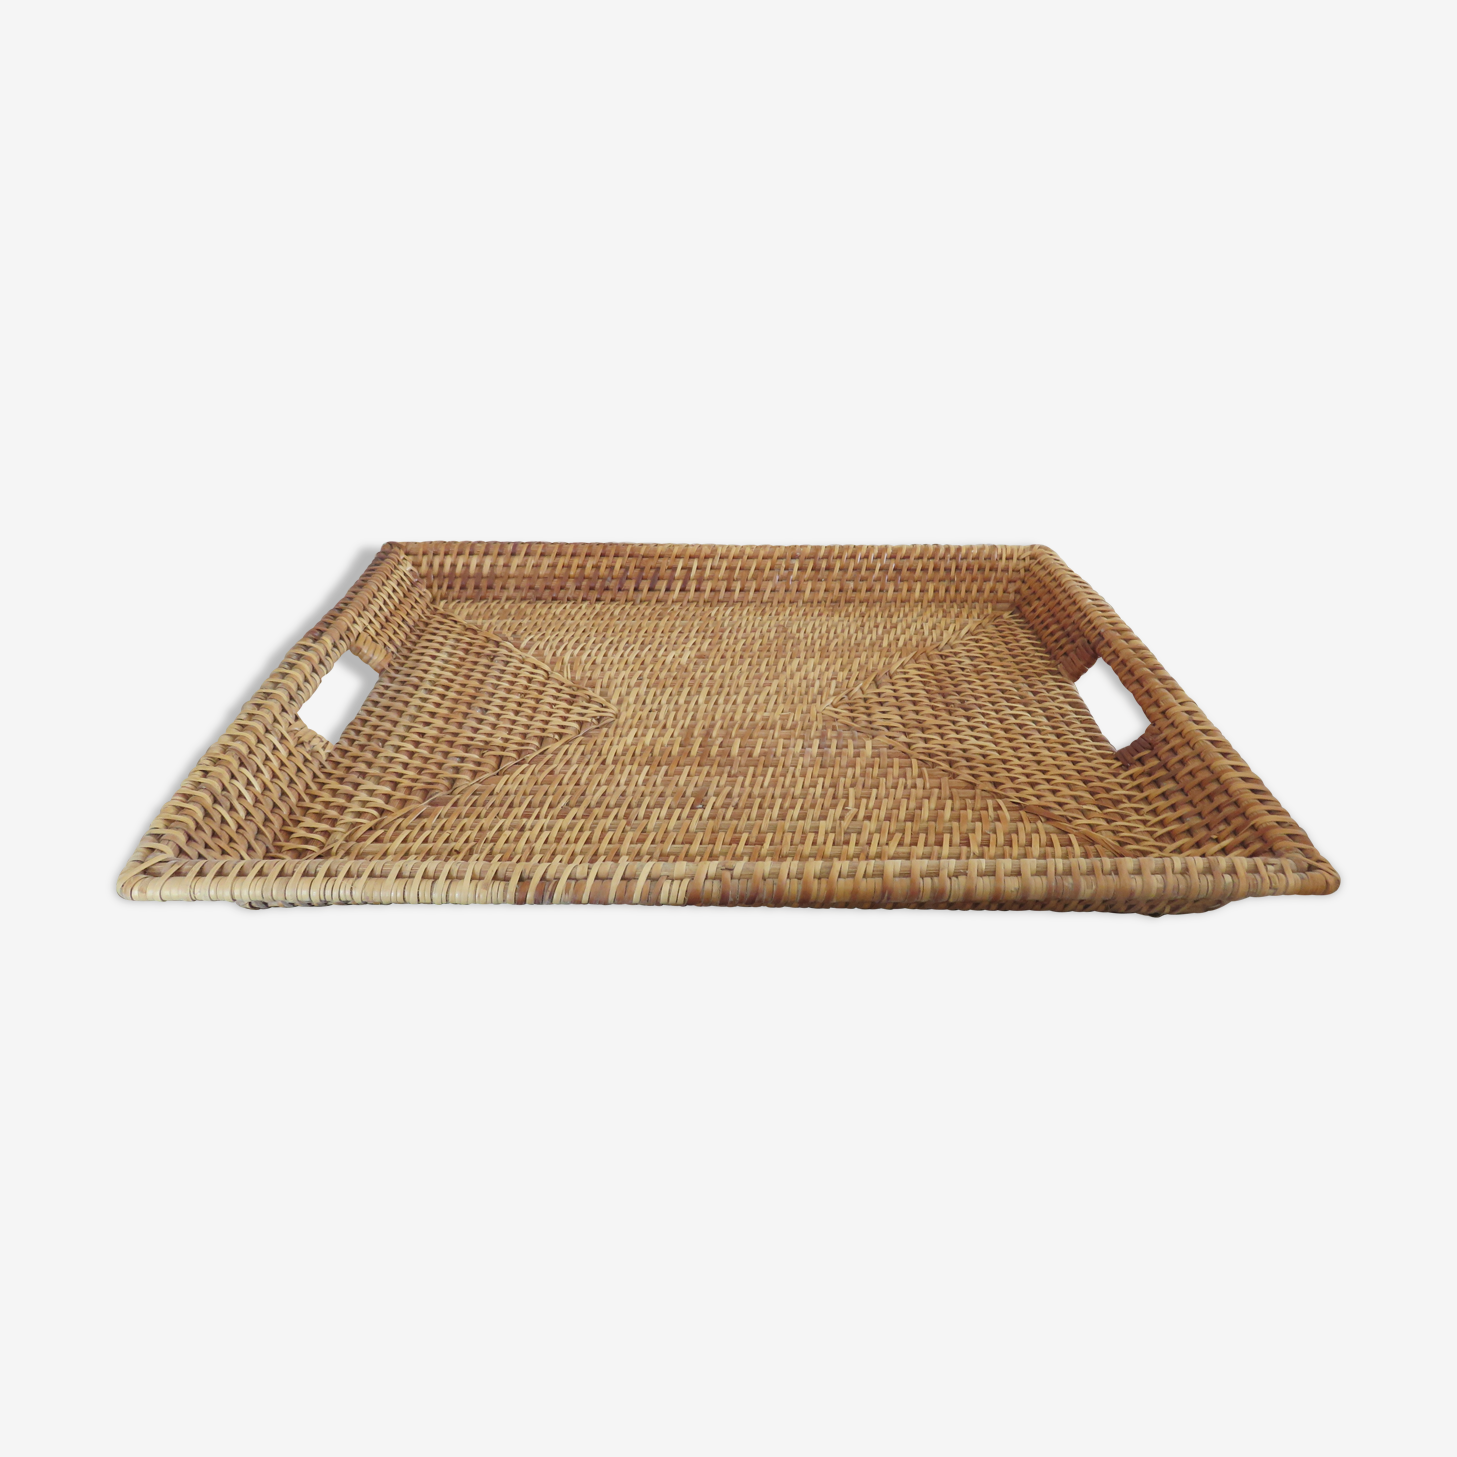 Tray with handles rattan